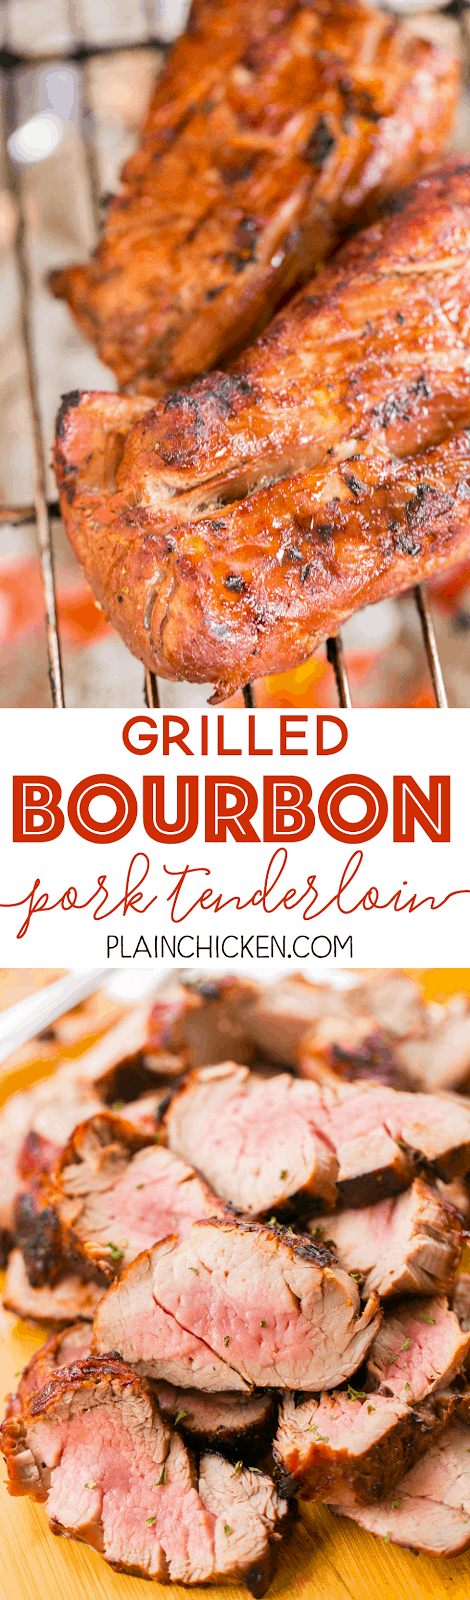 Grilled Bourbon Pork Tenderloin - better than any restaurant!!! We LOVED this pork! Pork tenderloins marinated in bourbon, brown sugar, soy sauce, Worcestershire, lemon juice, and garlic. Can use marinade on chicken and steak too. Everyone LOVES this easy marinade recipe. We make this at least once a month. SO good!